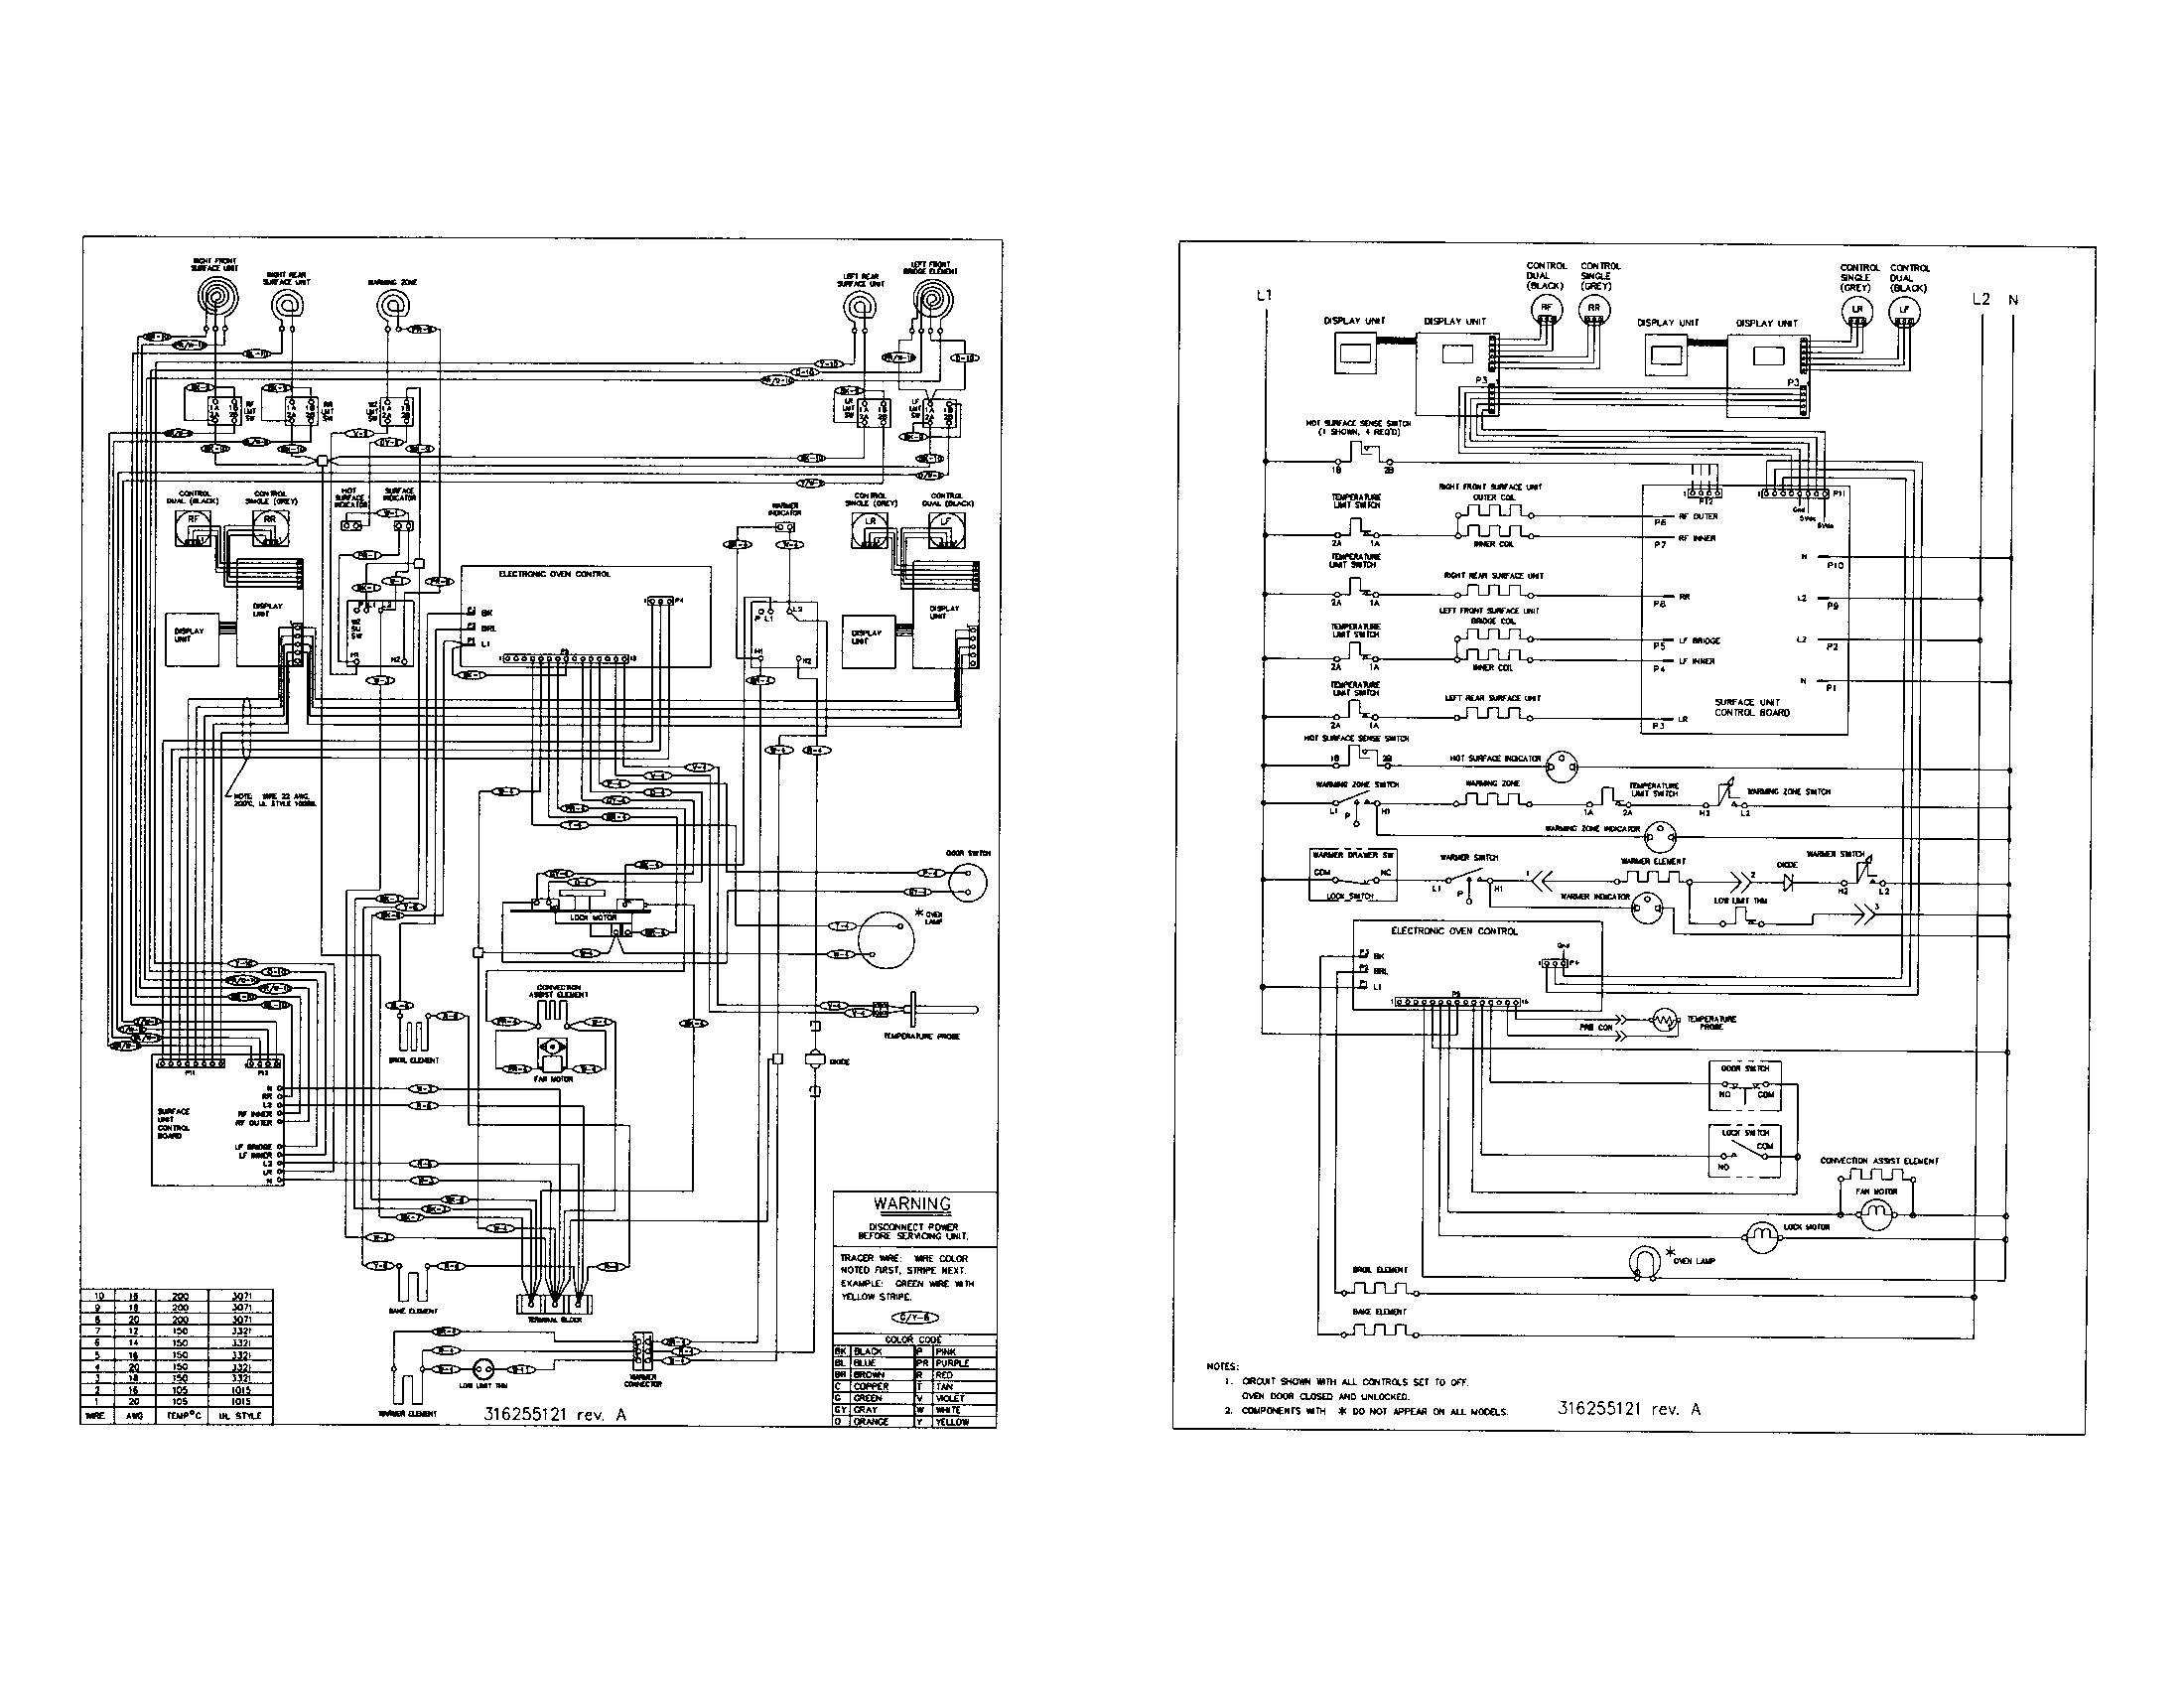 wiring diagram parts?resize\\\\\\\\\\\\\\\\\\\\\\\\\\\\\\\\\\\\\\\\\\\\\\\\\\\\\\\\\\\\\\\\\\\\\\\\\\\\\\\\\\\\\\\\\\\\\\\\\\\\\\\\\\\\\\\\\\\\\\\\\\\\\\\\\\\\\\\\\\\\\\\\\\\\\\\\\\\\\\\\\\\\\\\\\\\\\\\\\\\\\\\\\\\\\\\\\\\\\\\\\\\\\\\\\\\\\\\\\\\\\\\\\\\\\\\\\\\\\\\\\\\\\\\\\\\\\\\\\\\\\\\\\\\\\\\\\\\\\\\\\\\\\\\\\\\\\\\\\\\\\\\\\\\\\\\\\\\\\\\\\\\\\\\\\\\\\\\\\\\\\\\\\\\\\\\\\\\\\\\\\\\\\\\\\\\\\\\\\\\\\\\\\\\\\\\\\\\\\\\\\\\\\\\\\\\\\\\=840%2C648 lr27935 wiring diagram simple circuit diagram \u2022 free wiring mercury thermostat wiring diagram at edmiracle.co